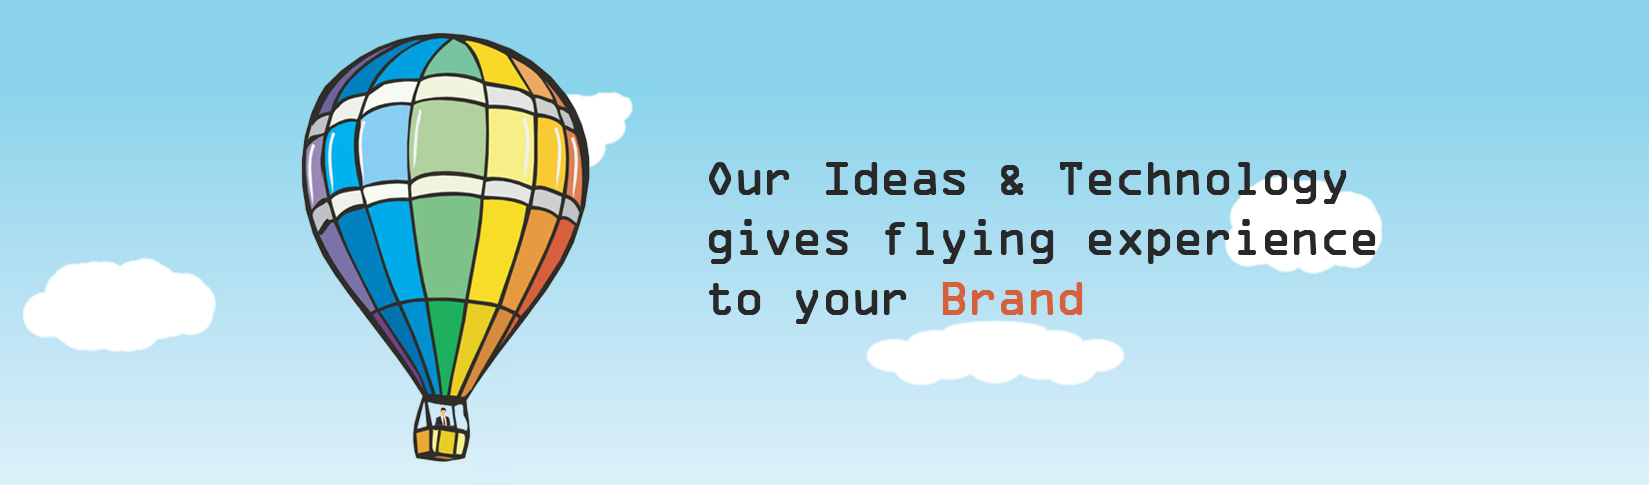 Ideas & techonogy flying experience brand